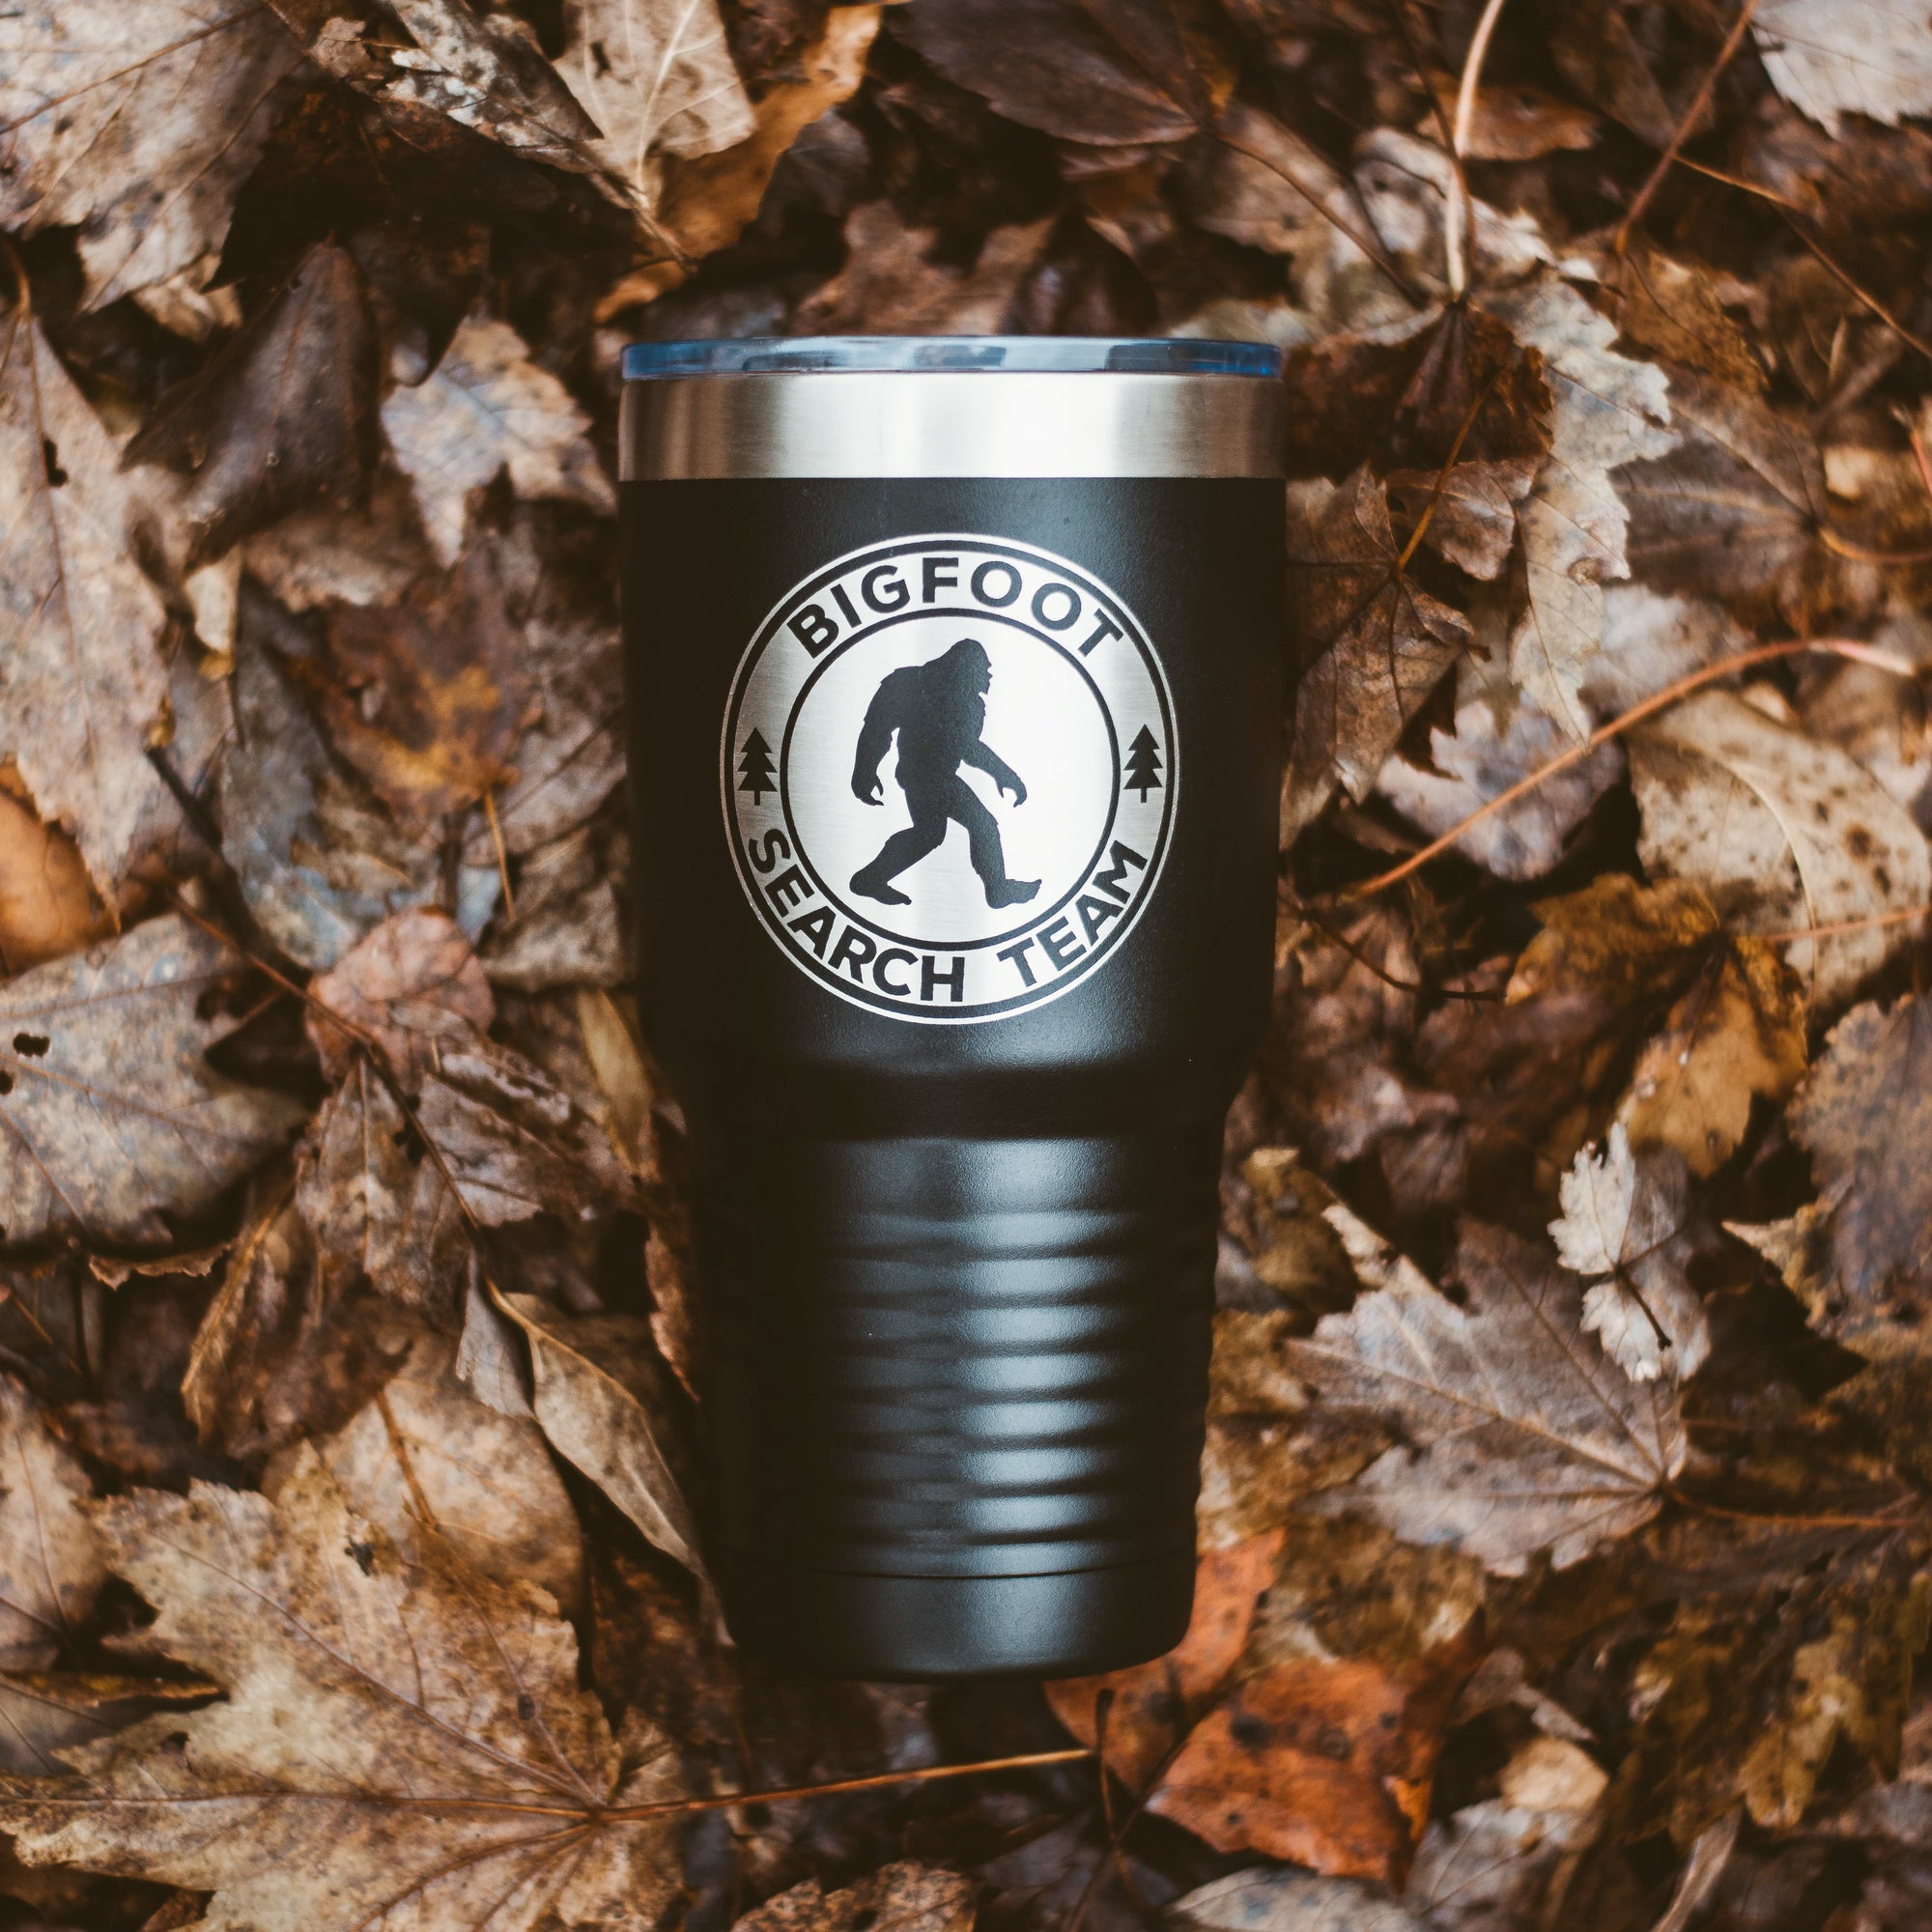 Bigfoot Search Team Tumbler - Black 30 oz